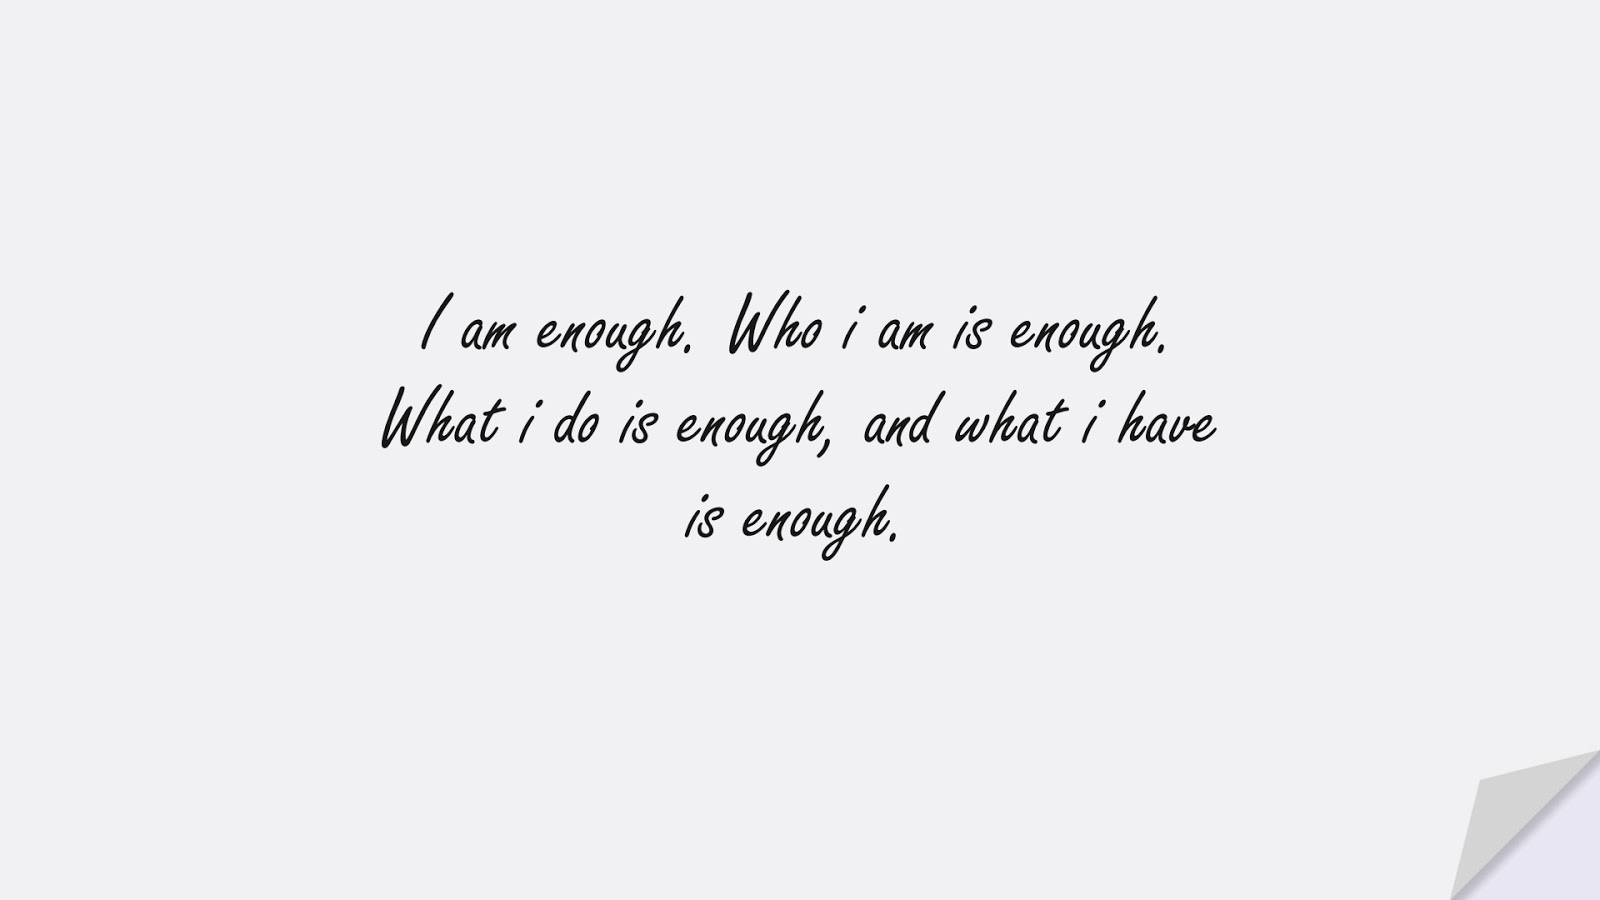 I am enough. Who i am is enough. What i do is enough, and what i have is enough.FALSE